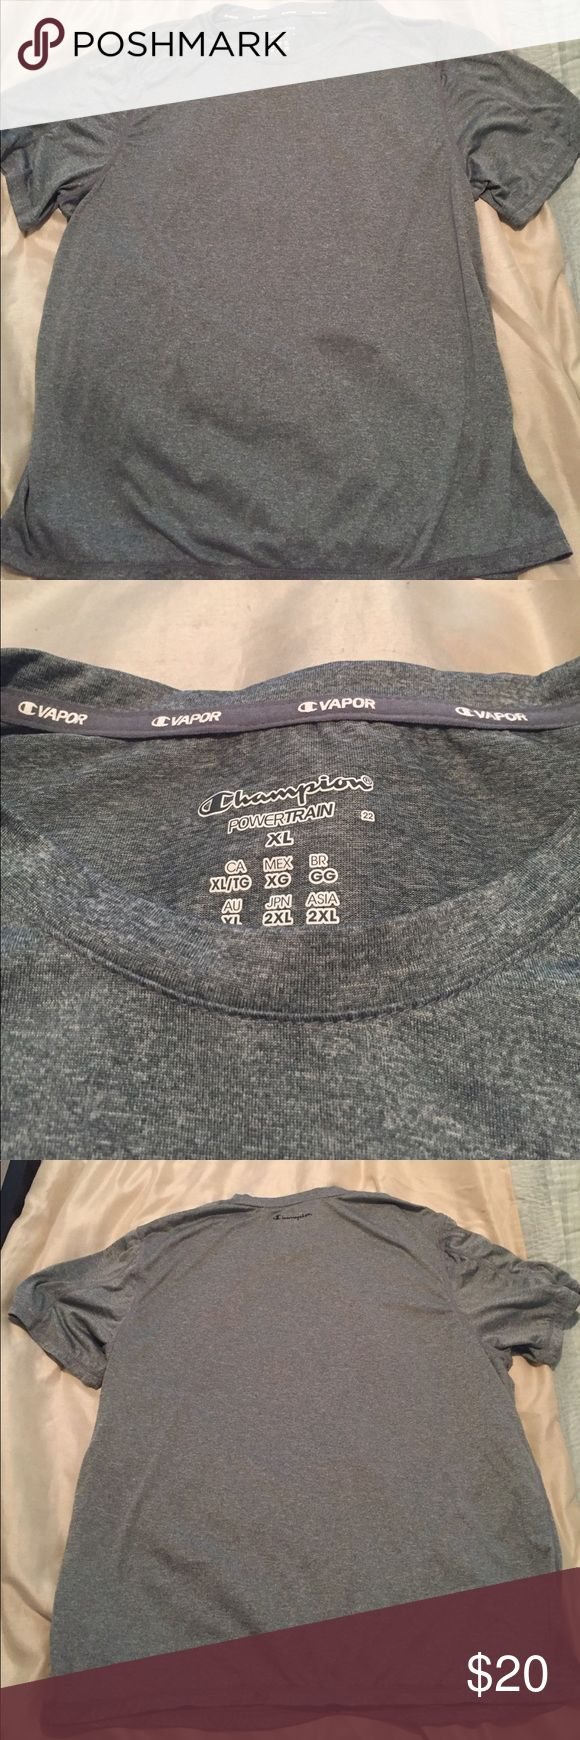 Men's gray athletic shirt Never worn Champion Power Train athletic shirt. Champion Shirts